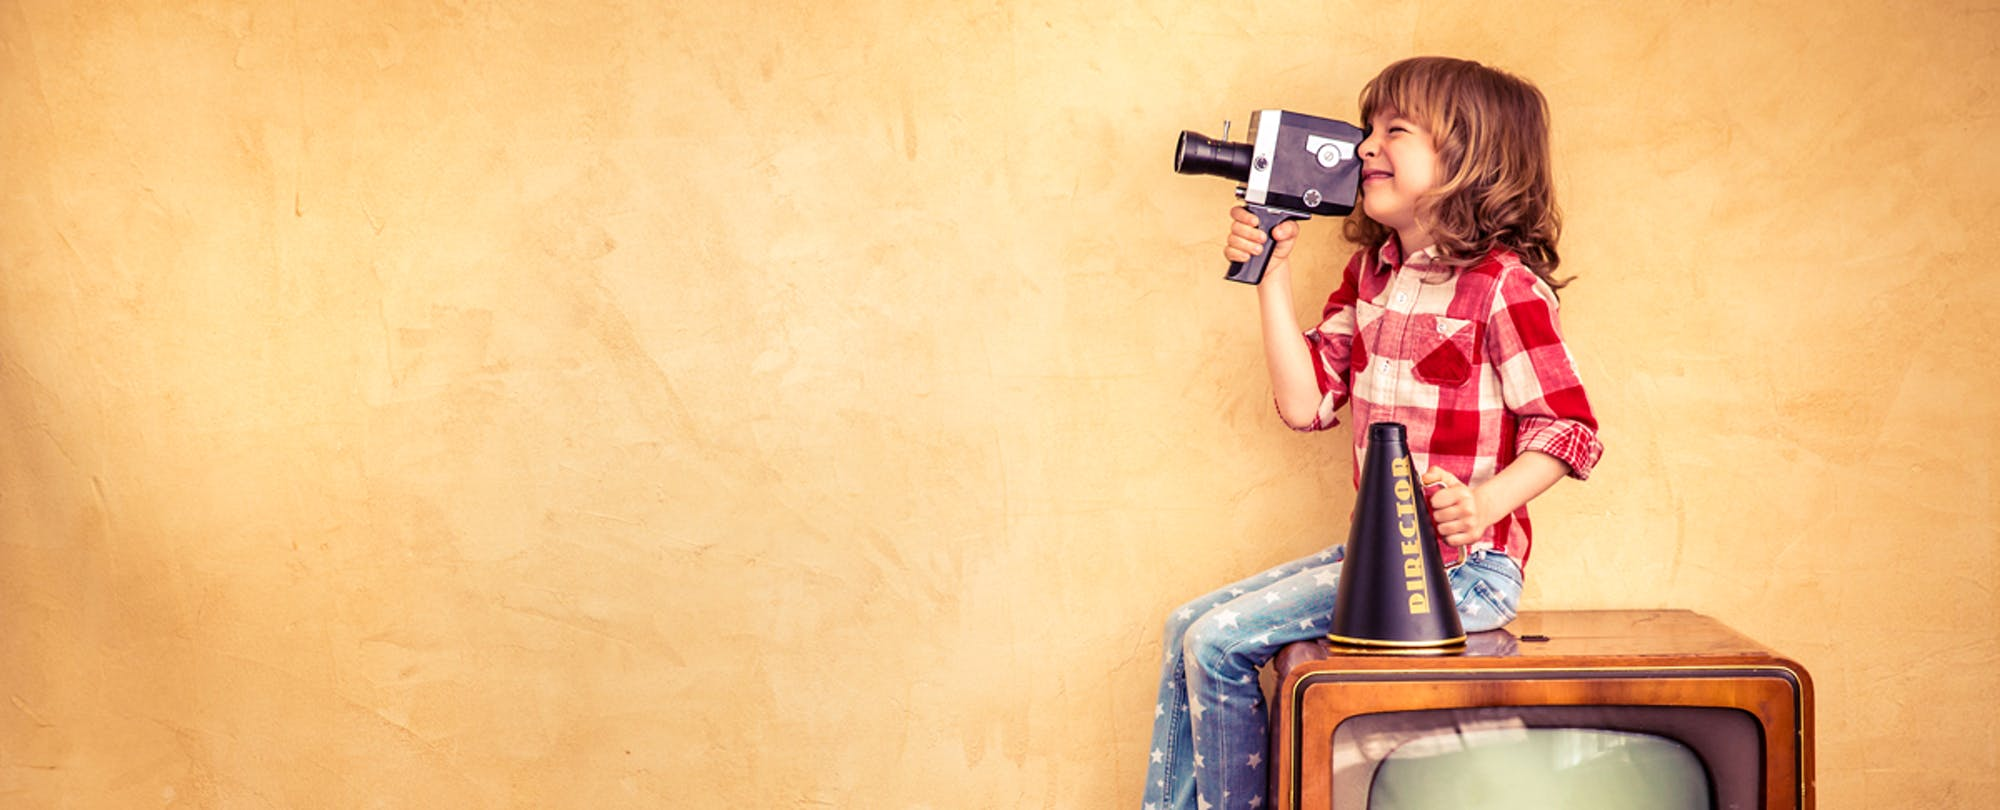 Shoot, I Did It Again: 3 More Ways to Implement Video in Professional Learning